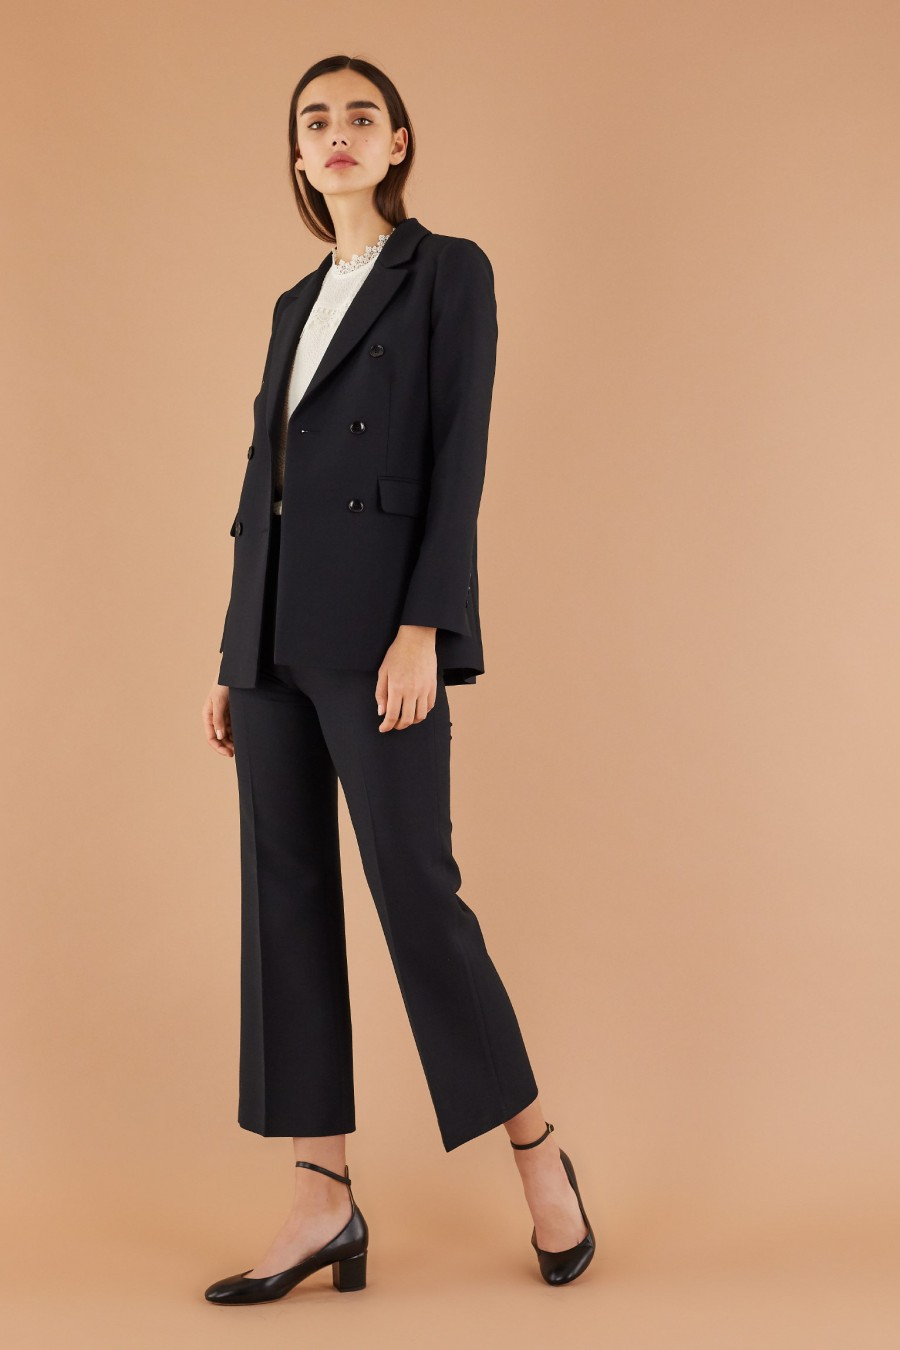 wool black suit with trumpet trousers